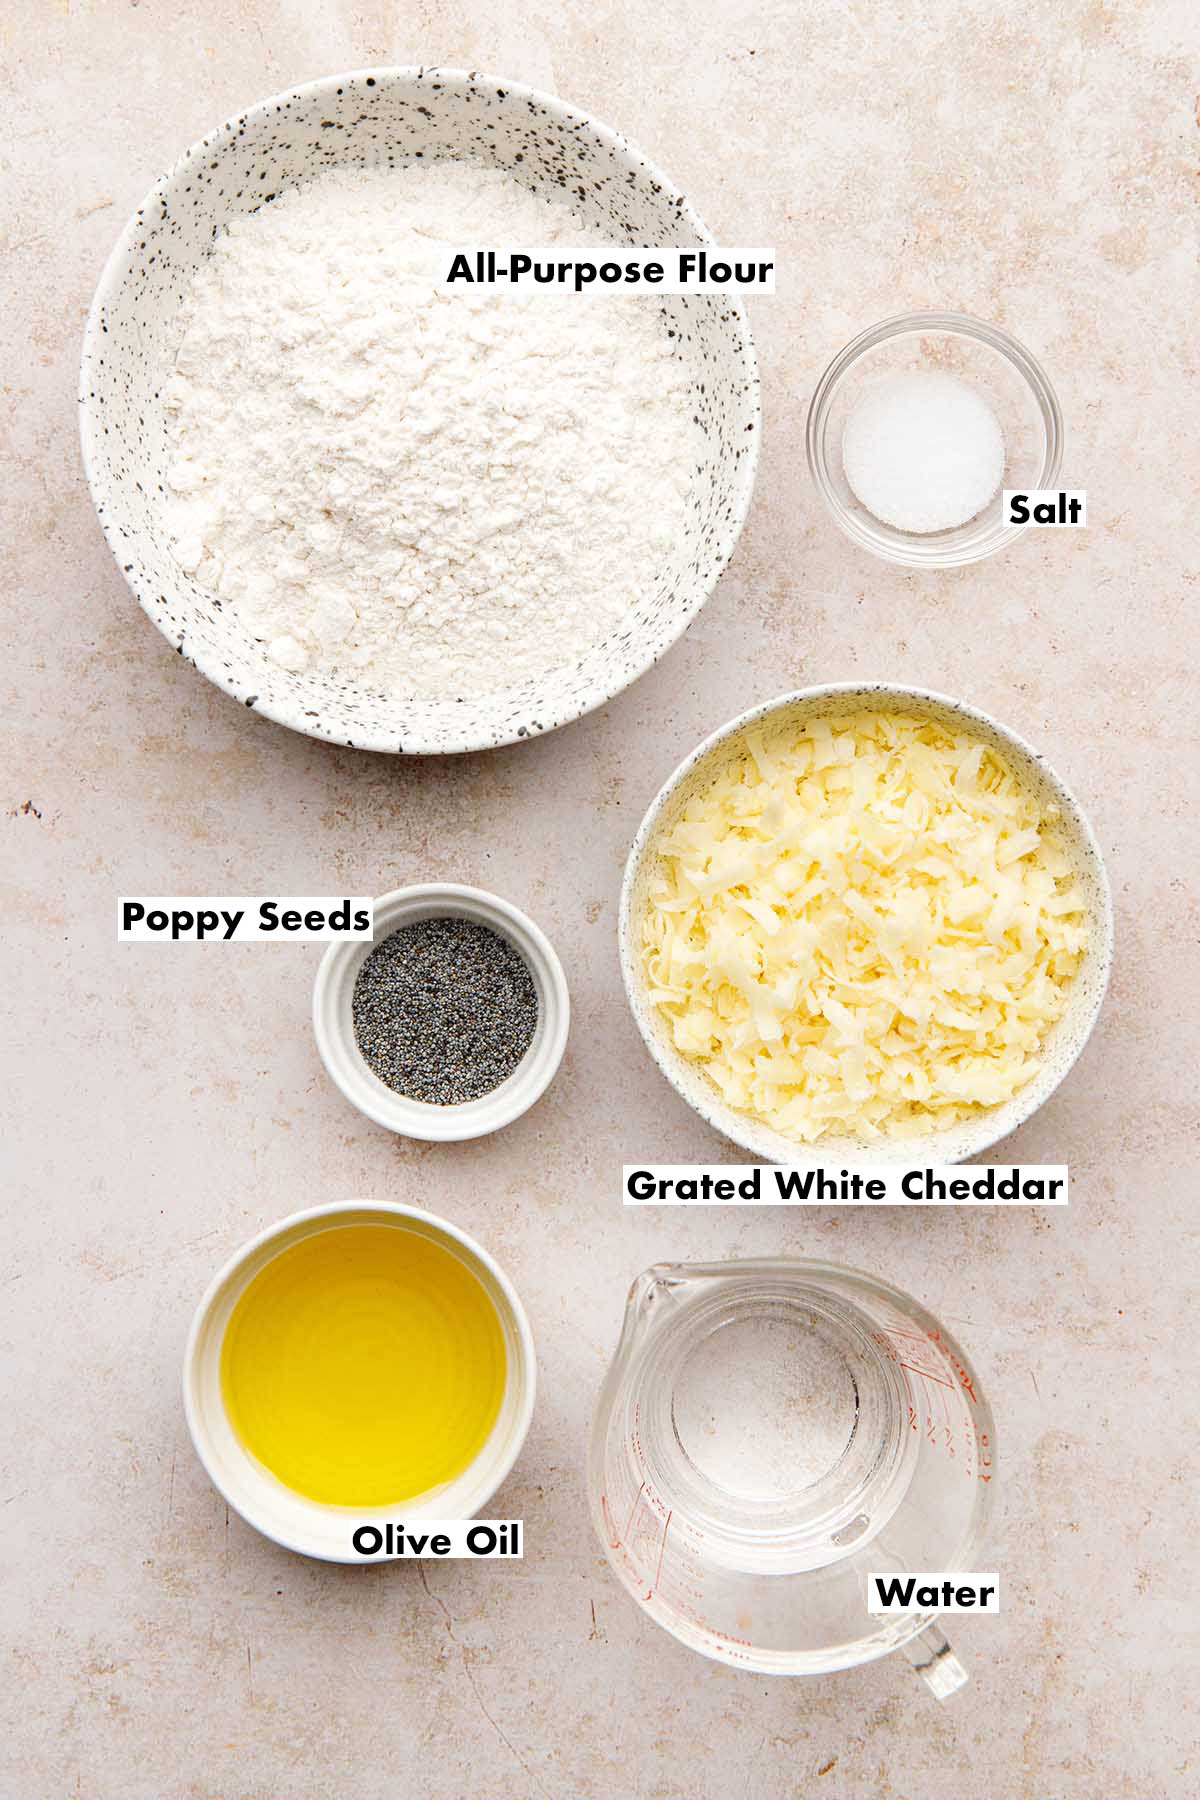 Ingredients to make white cheddar crackers with poppy seeds.